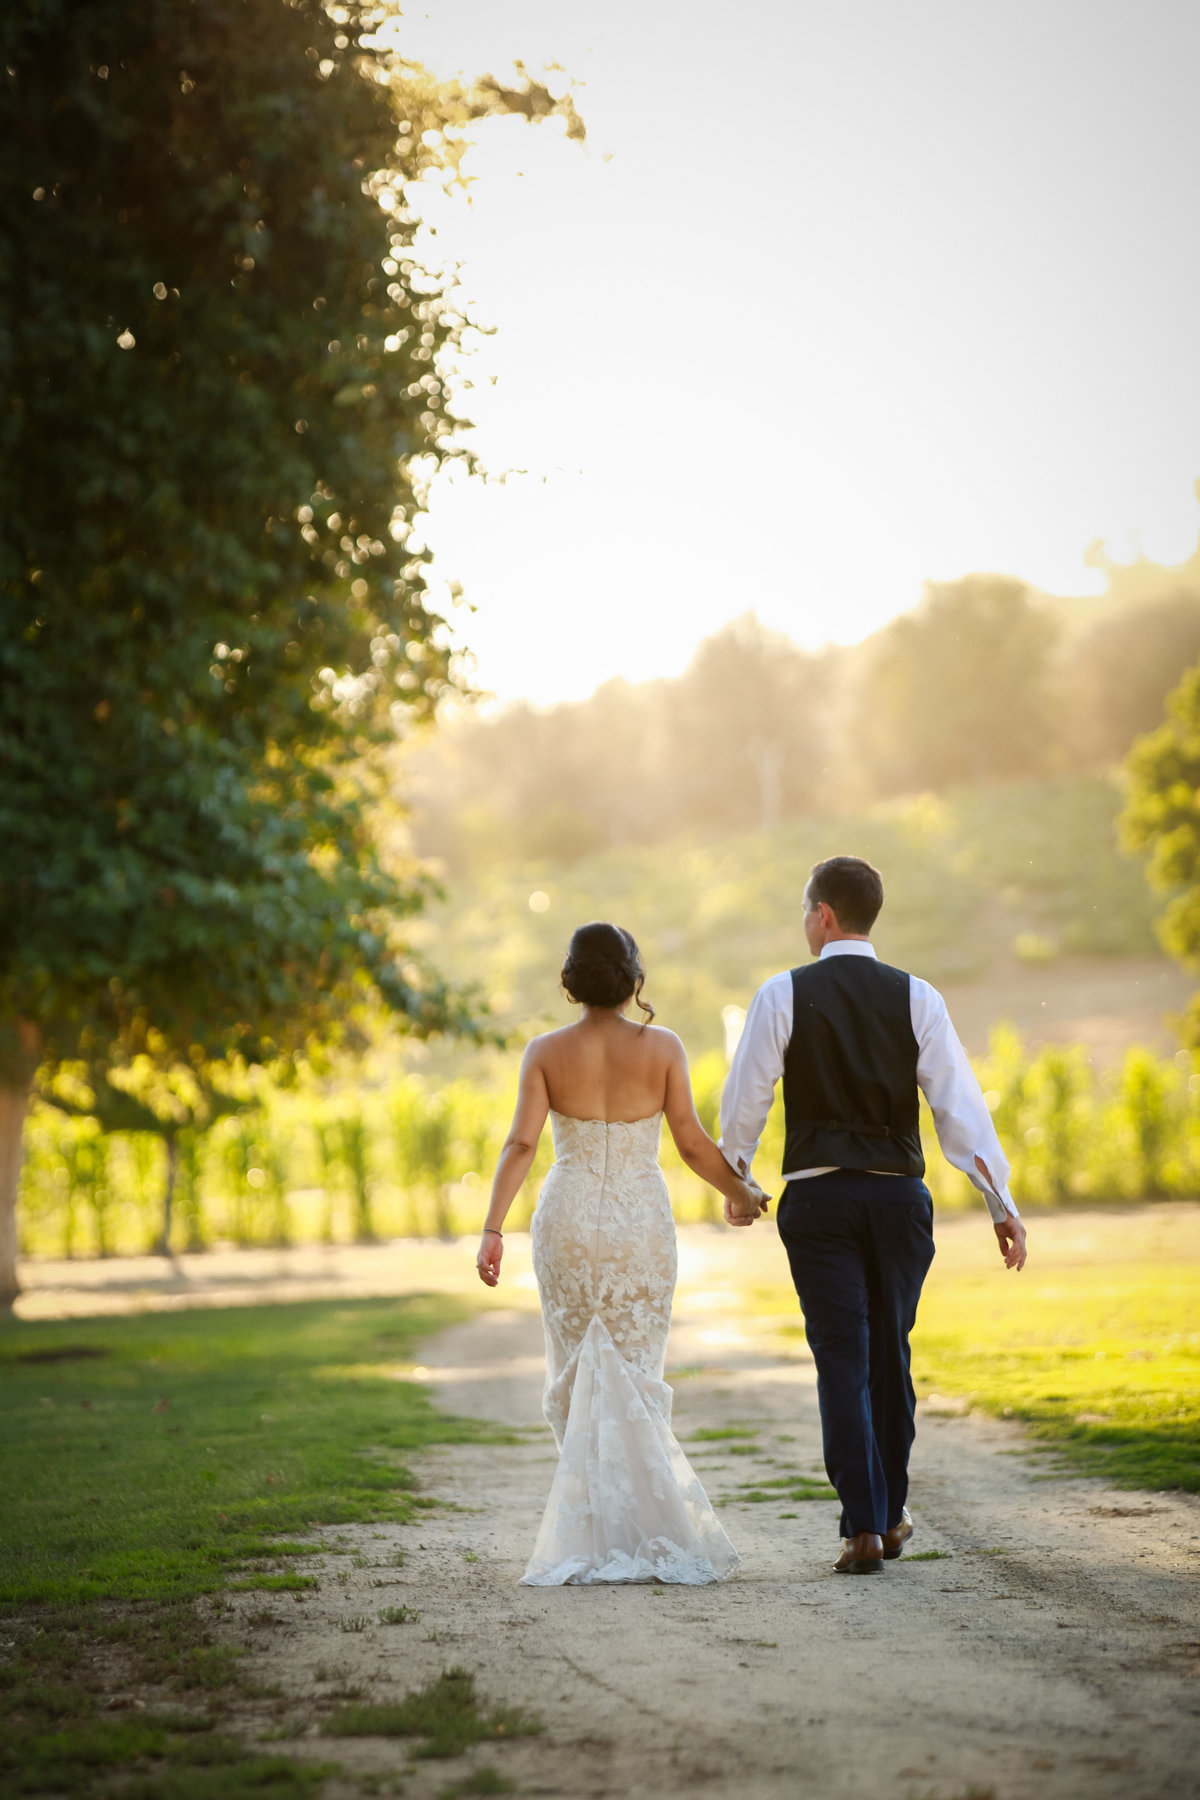 wedding_photography_bride_groom_bates_nut_farm_escondido_ca_by_tommy_of_cassia_karin_photography-111